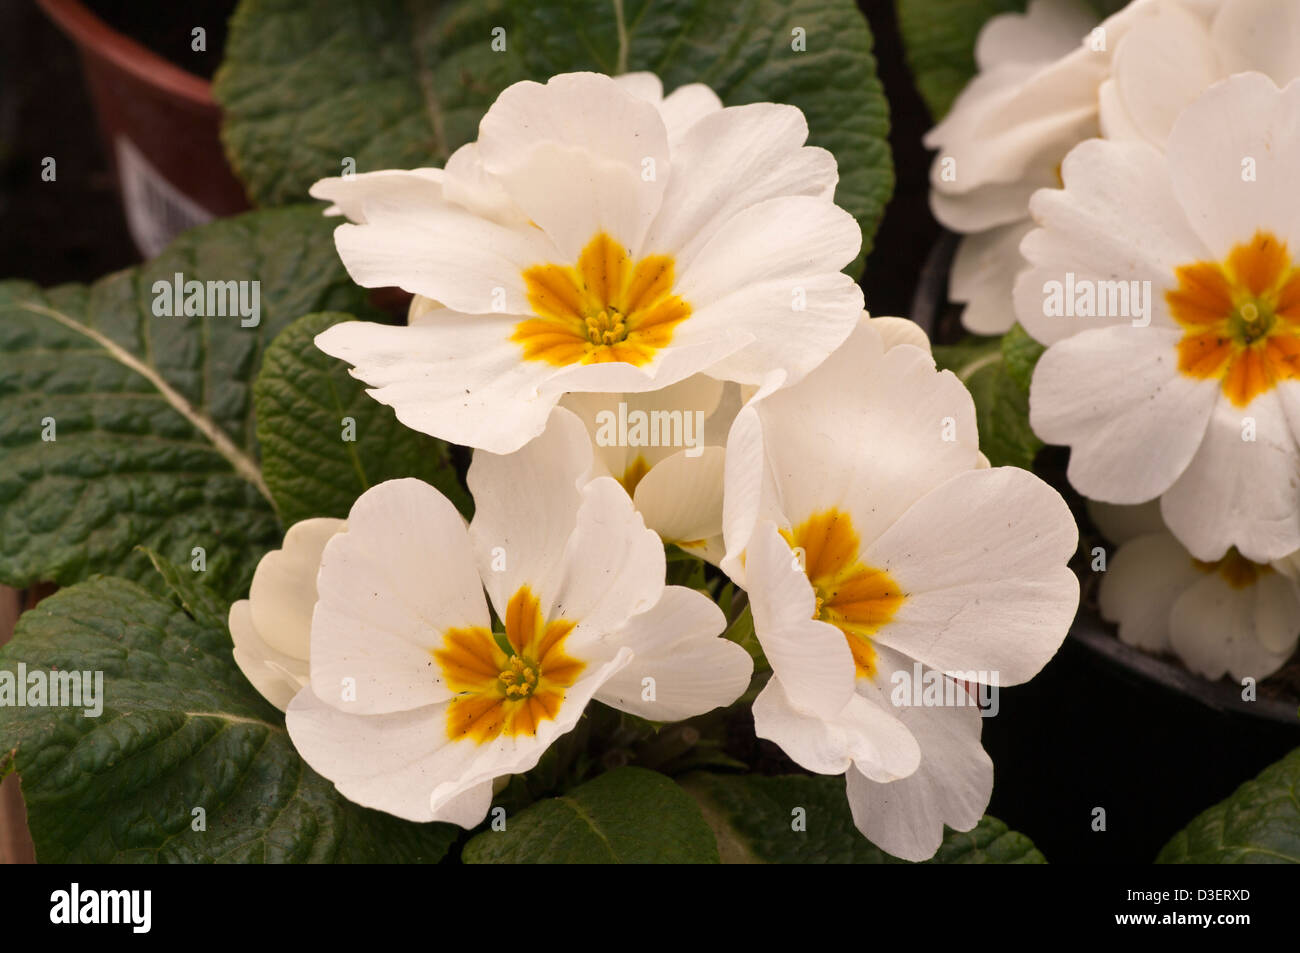 White Primroses Spring Flowers Uk Stock Photo 53801173 Alamy